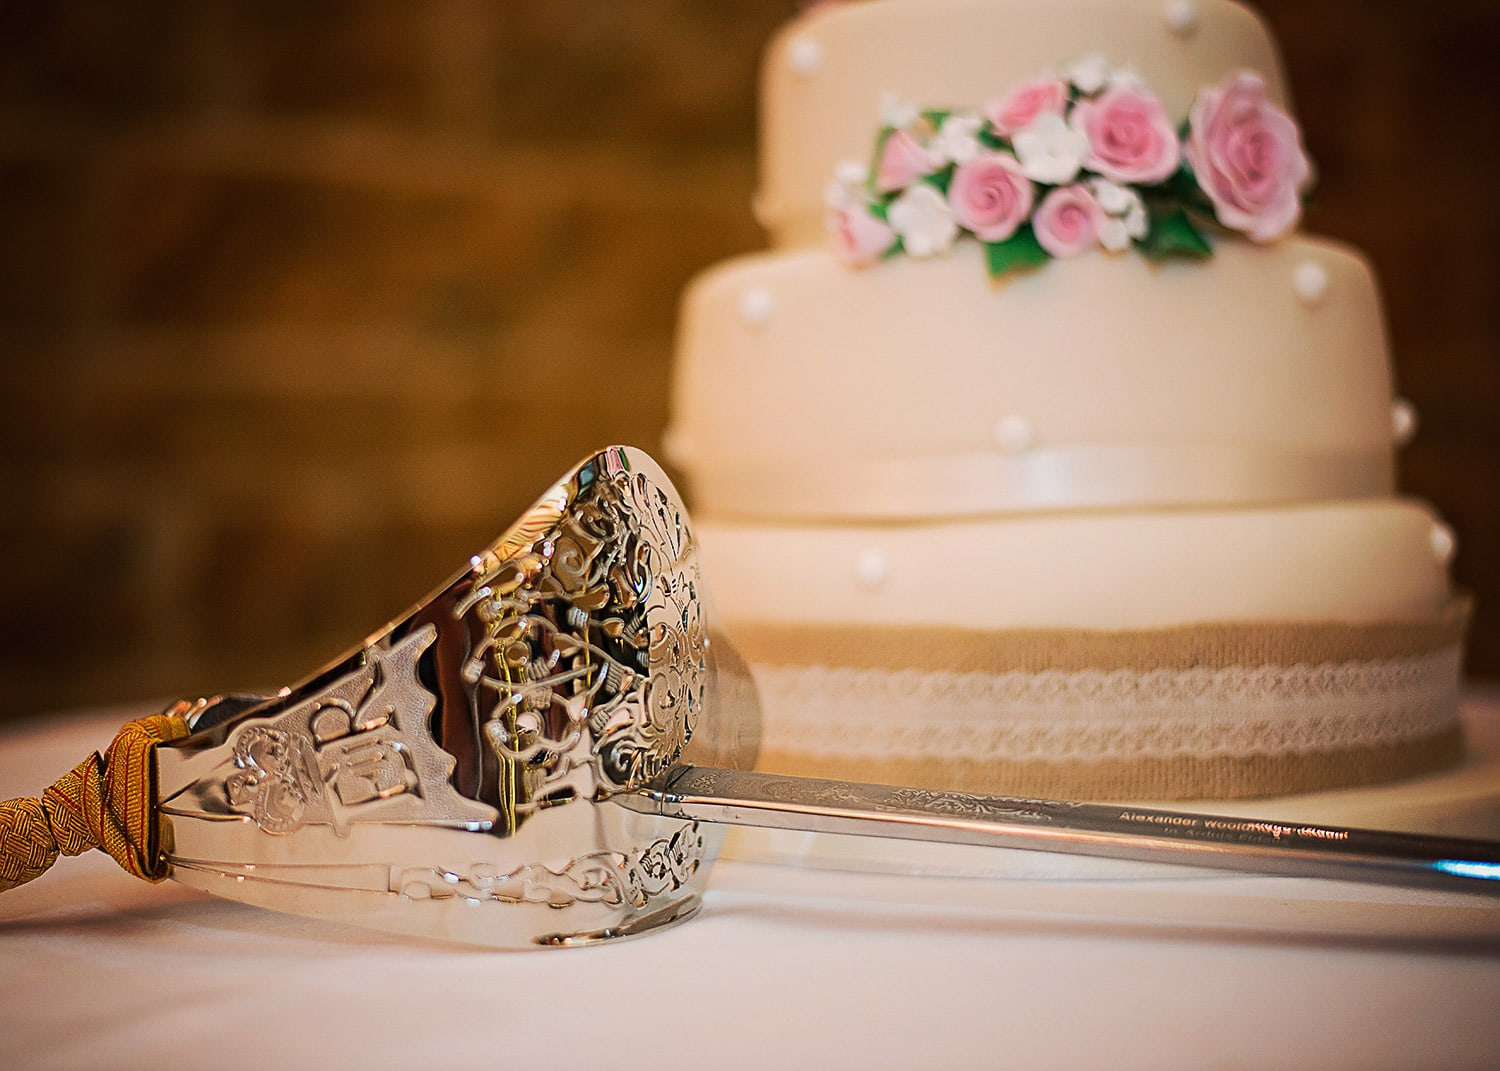 military sword resting next to wedding cake